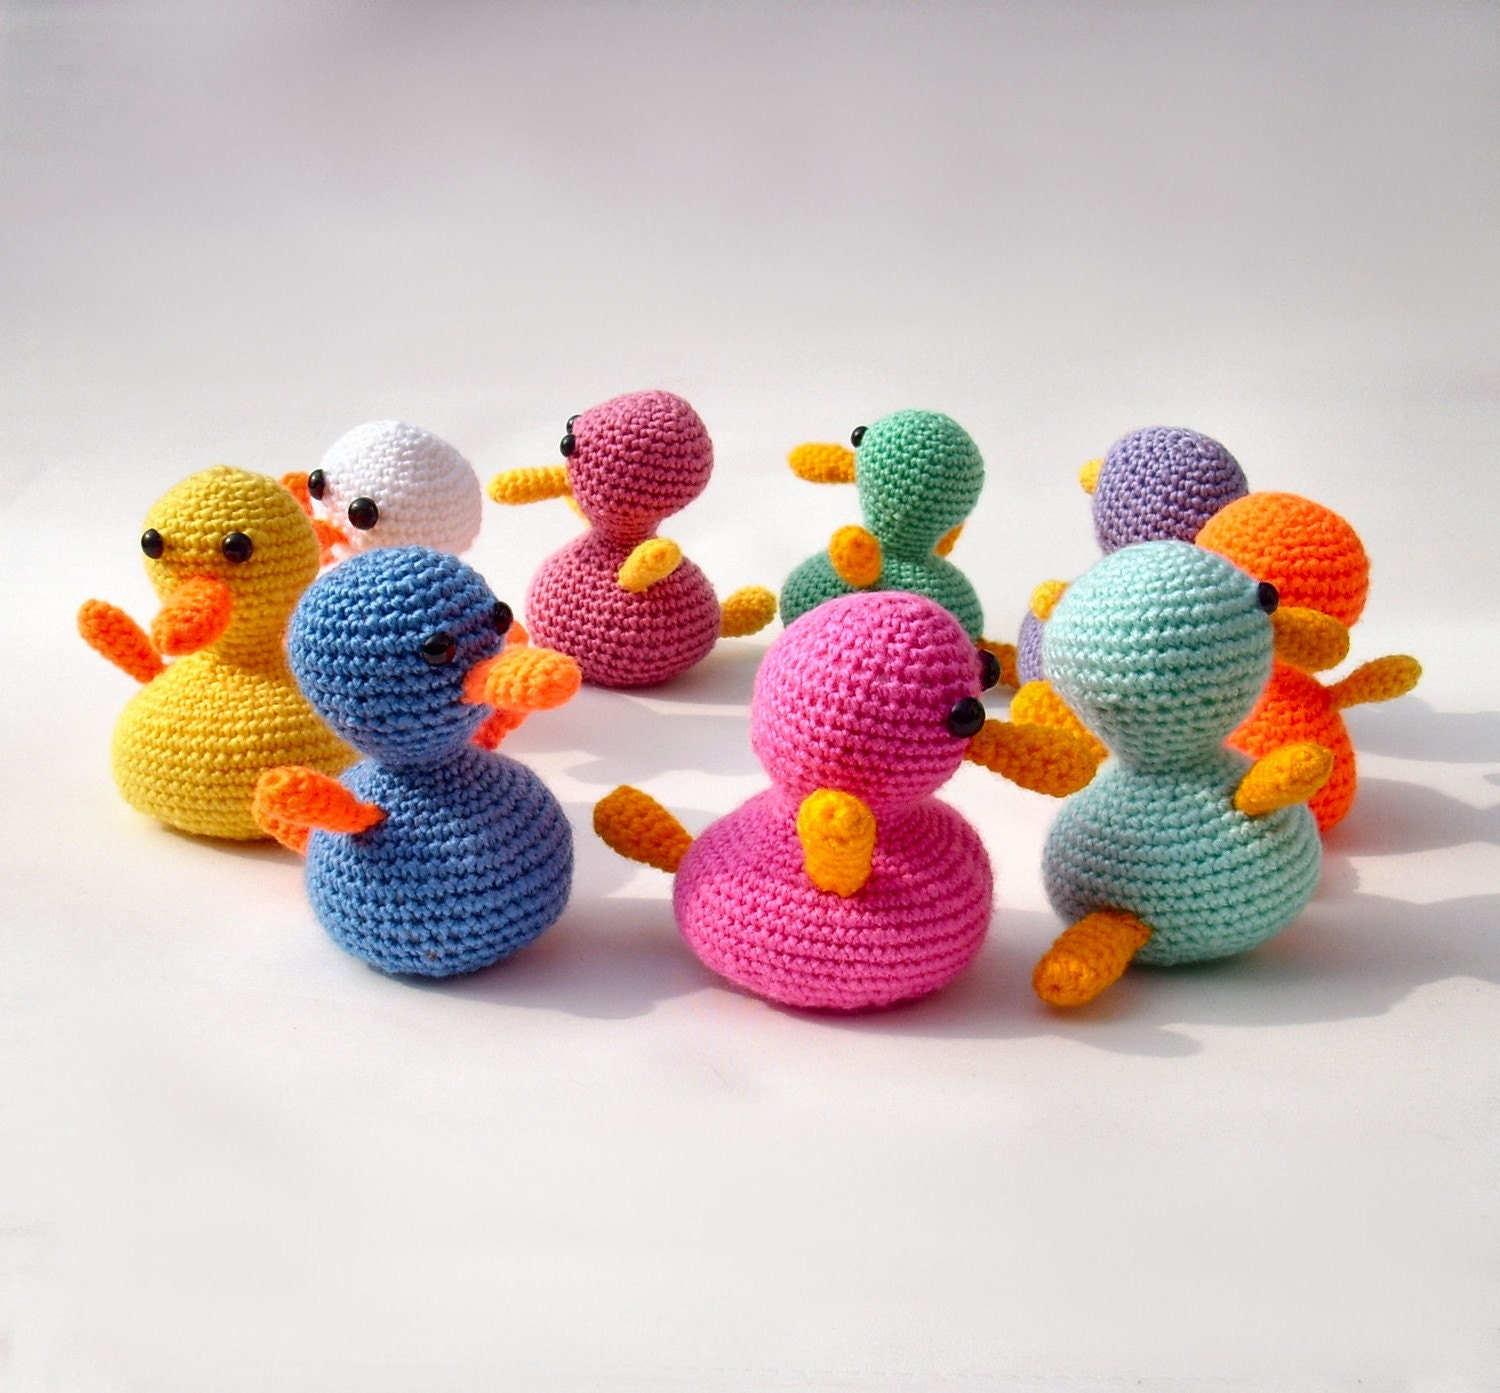 Amigurumi Duckling : Amigurumi duck crochet handmade plush traditional rubber ...